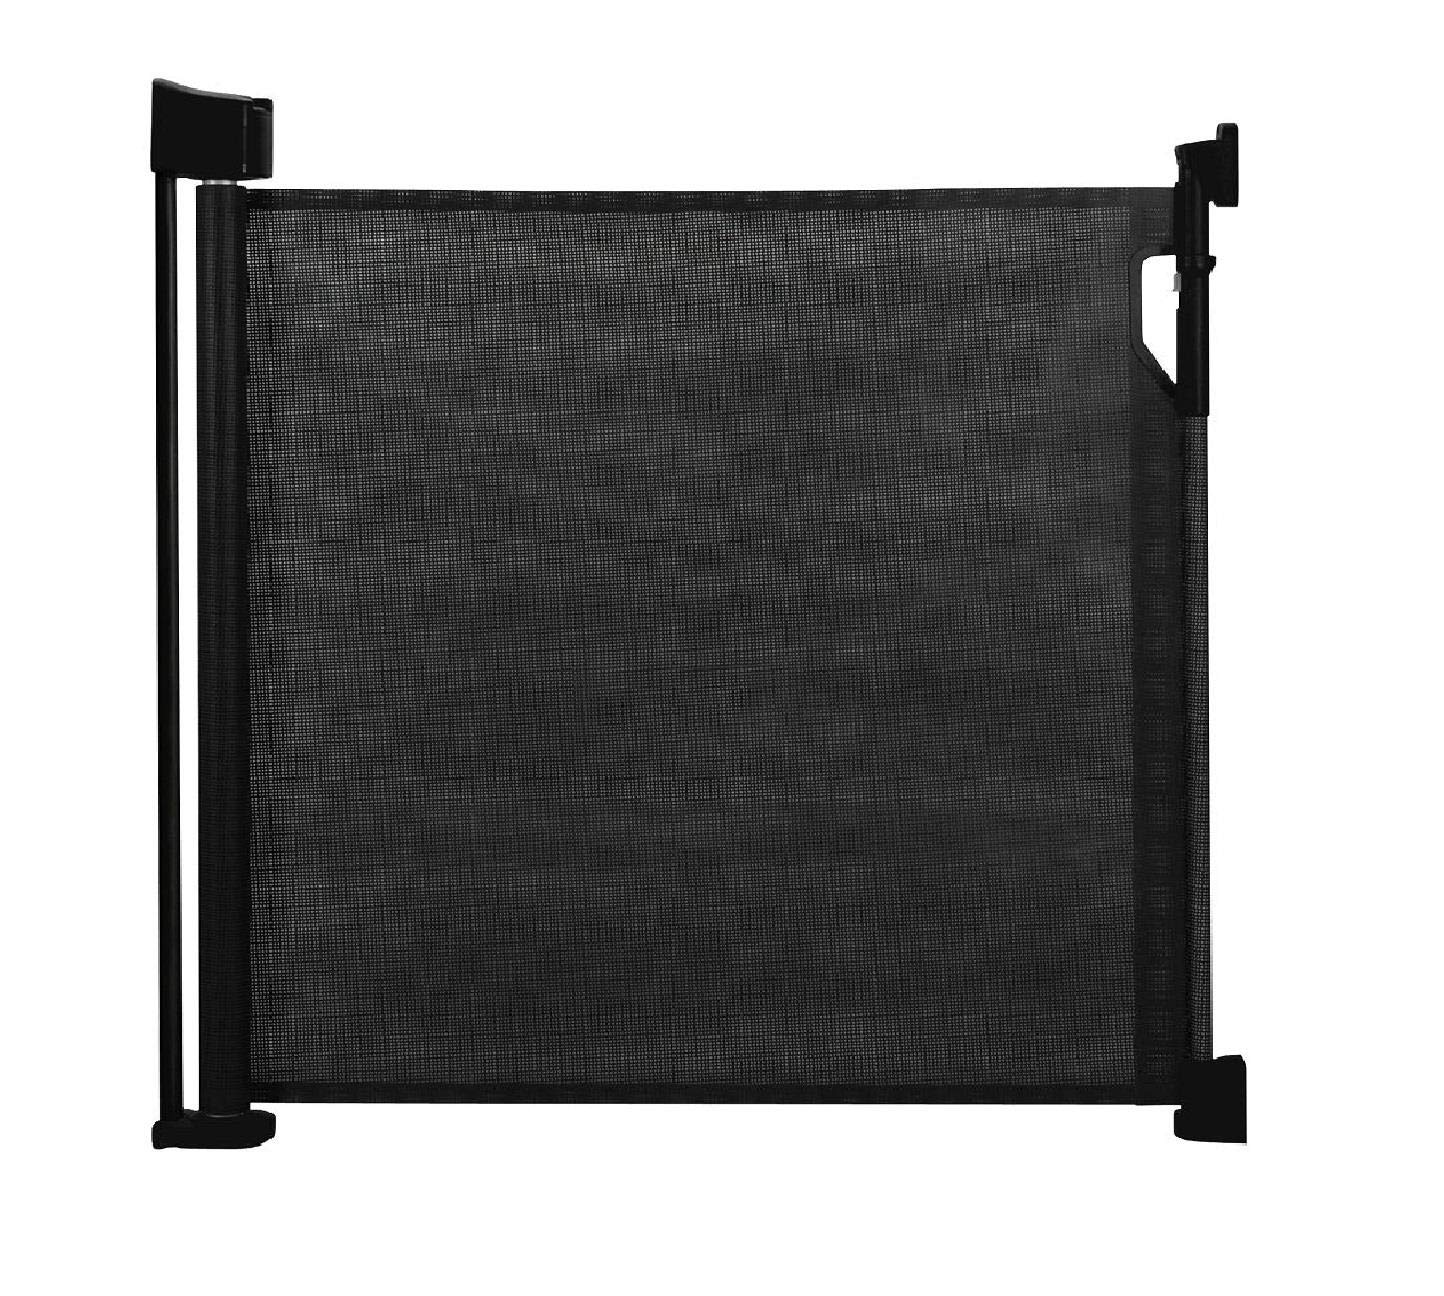 Safetots Extra Tall and Wide Advanced Retractable XL (Black) Safetots Adjusts to fit openings from 20cm-140cm 95cm in Height, the tallest Safety Tested Retractable Gate on the market Screw fit, mesh barrier with steel frame 1